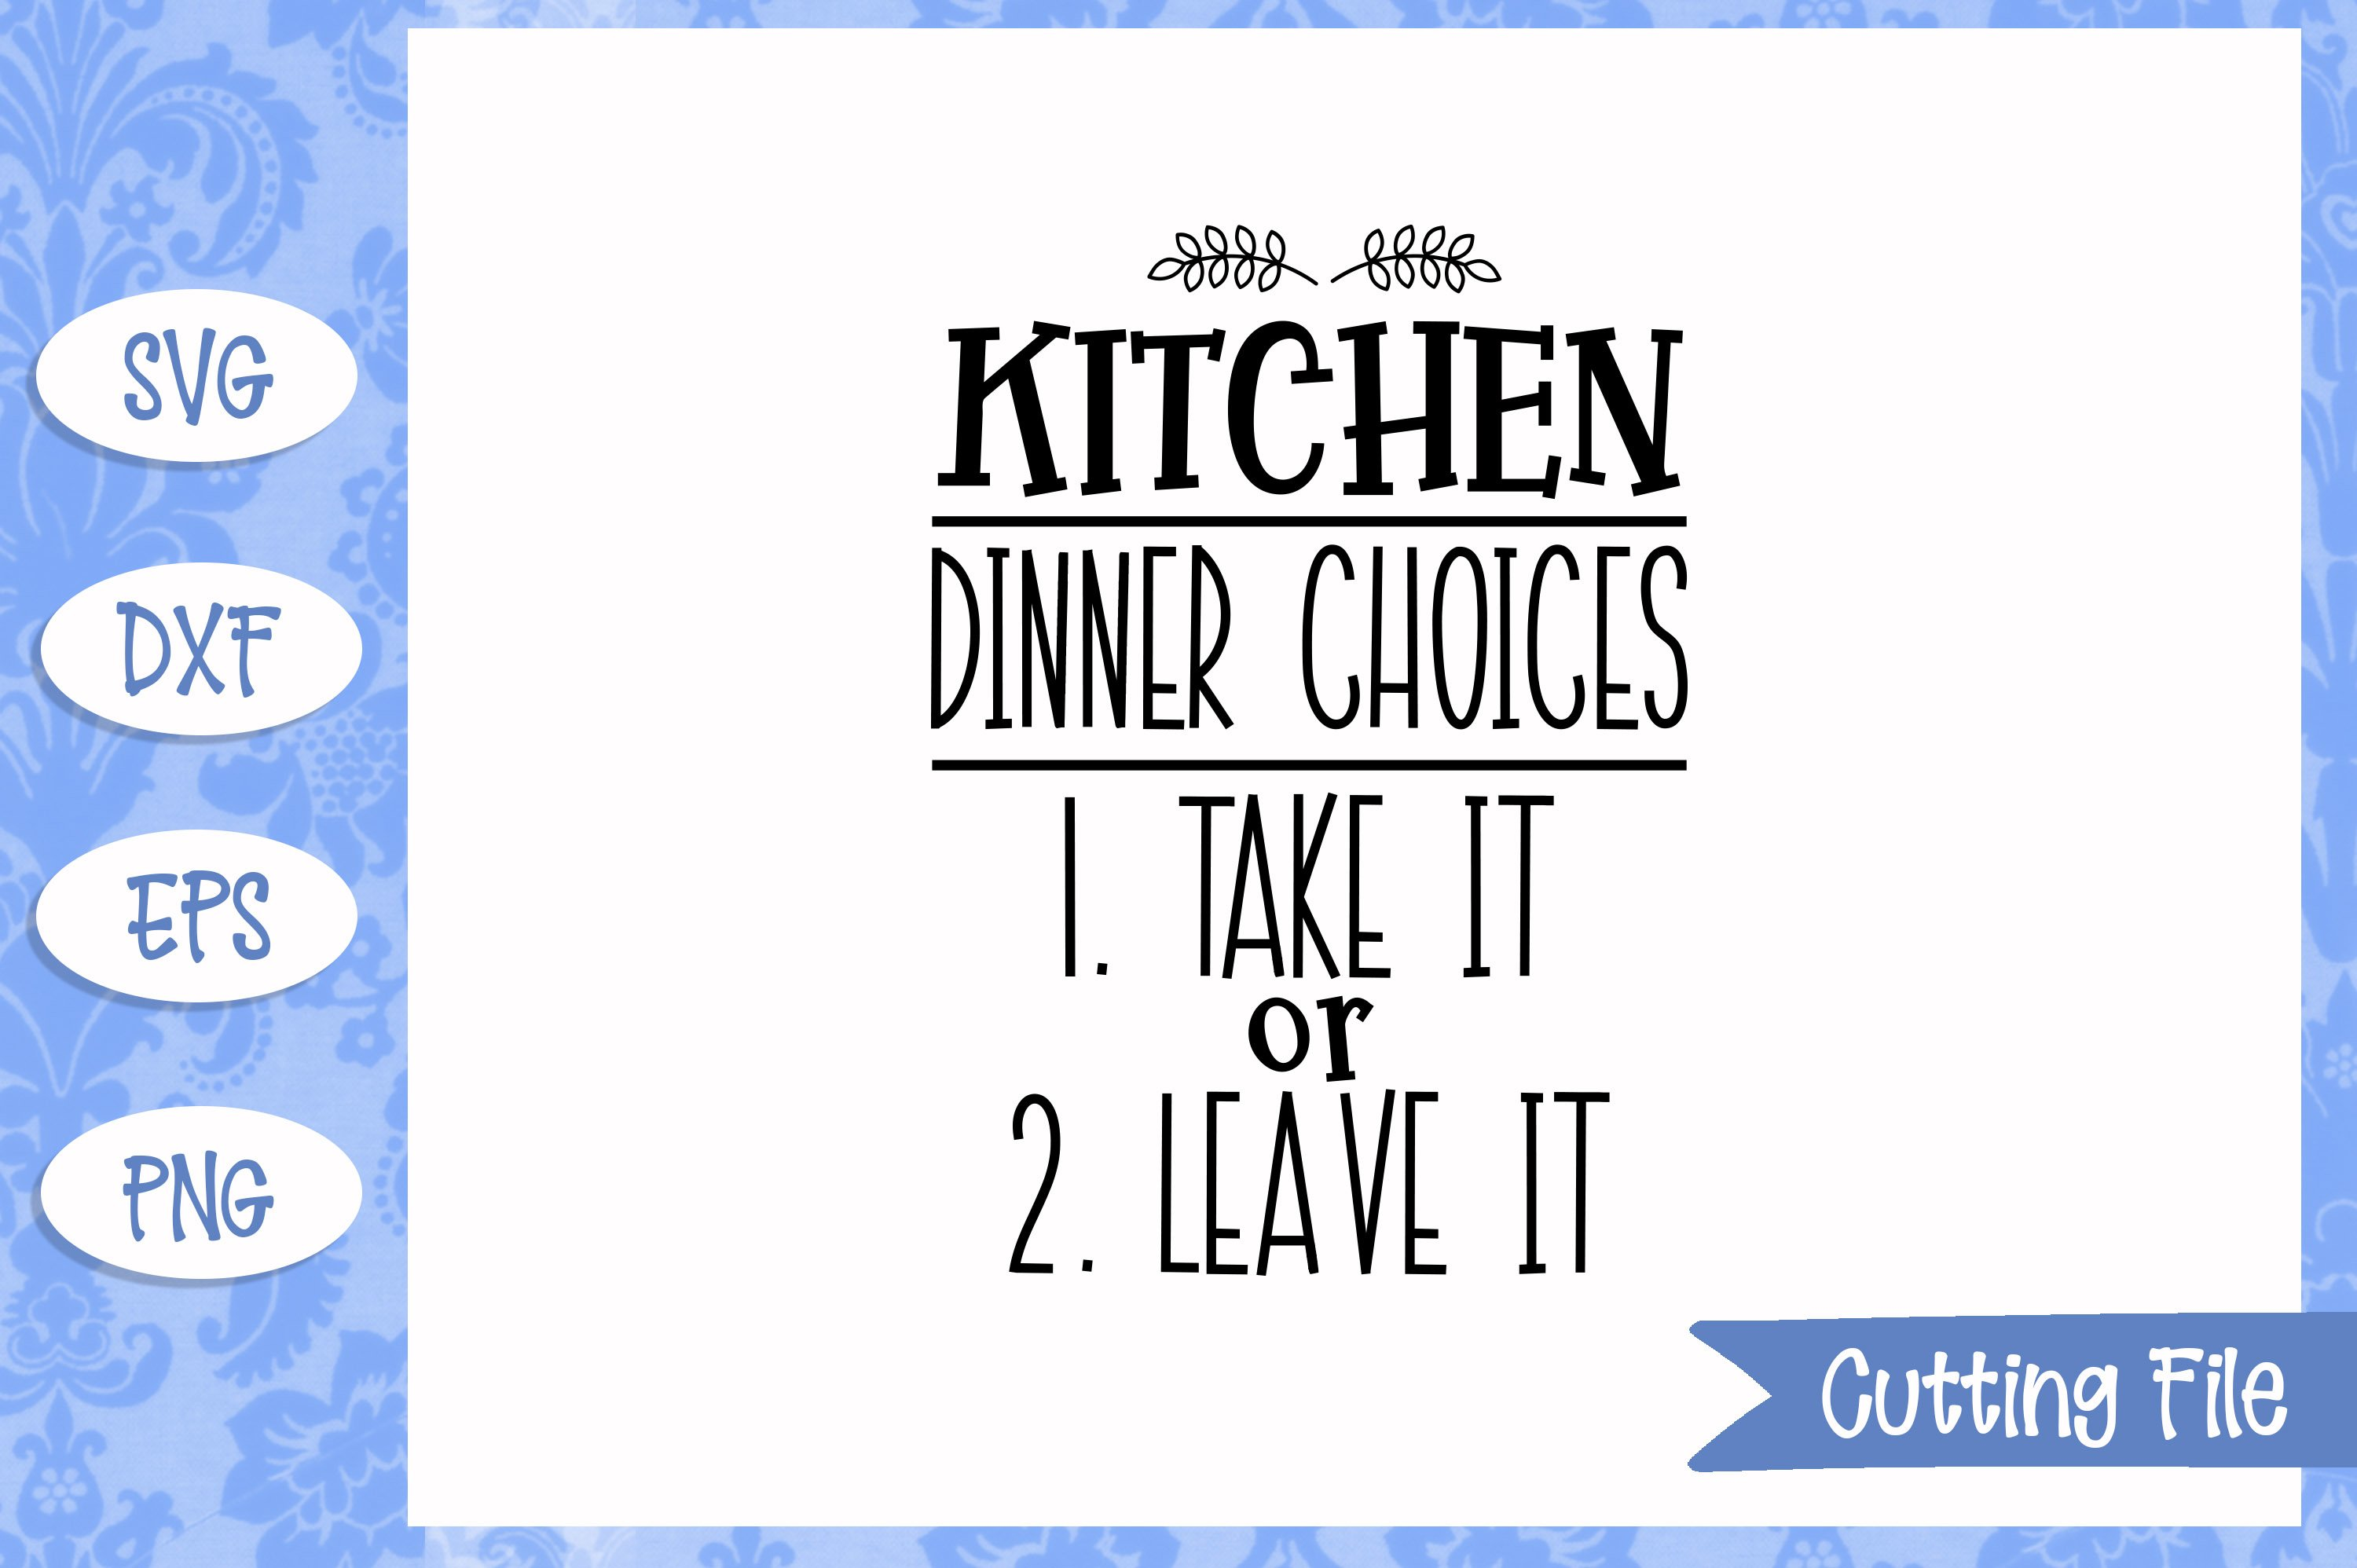 Dinner choices SVG File example image 1